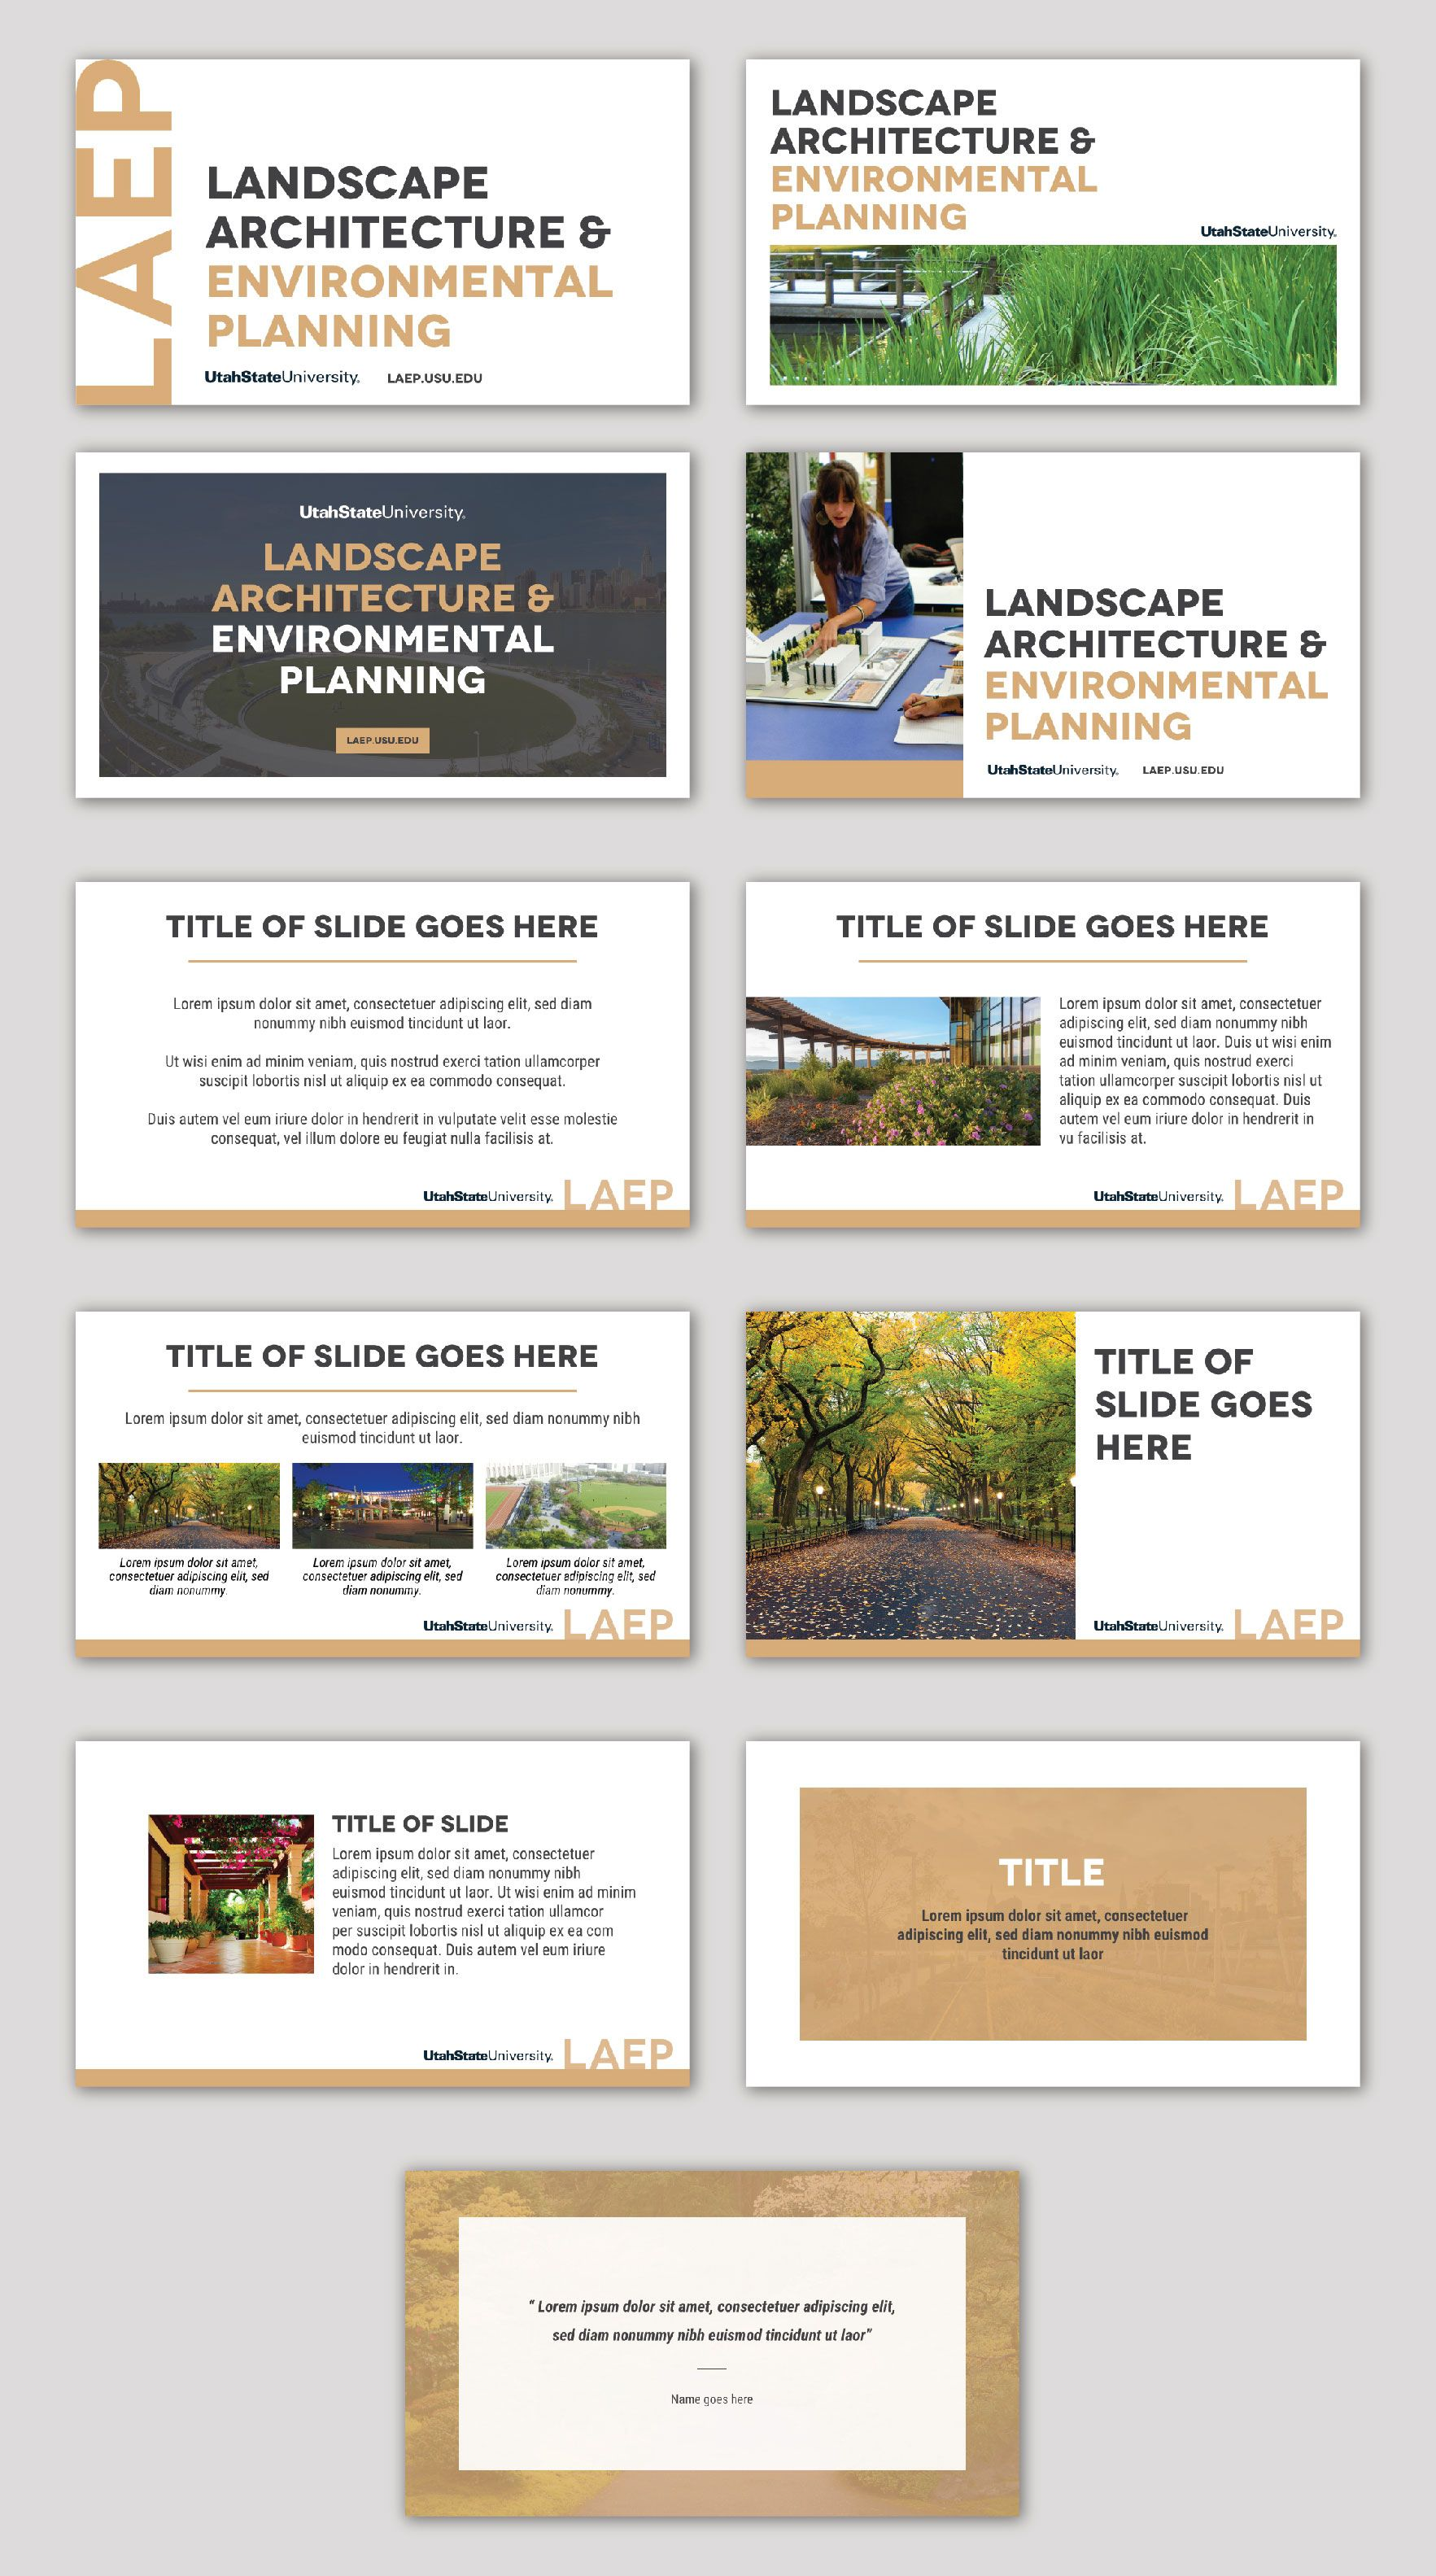 LAEP PowerPoint Template   Environmental architecture ...